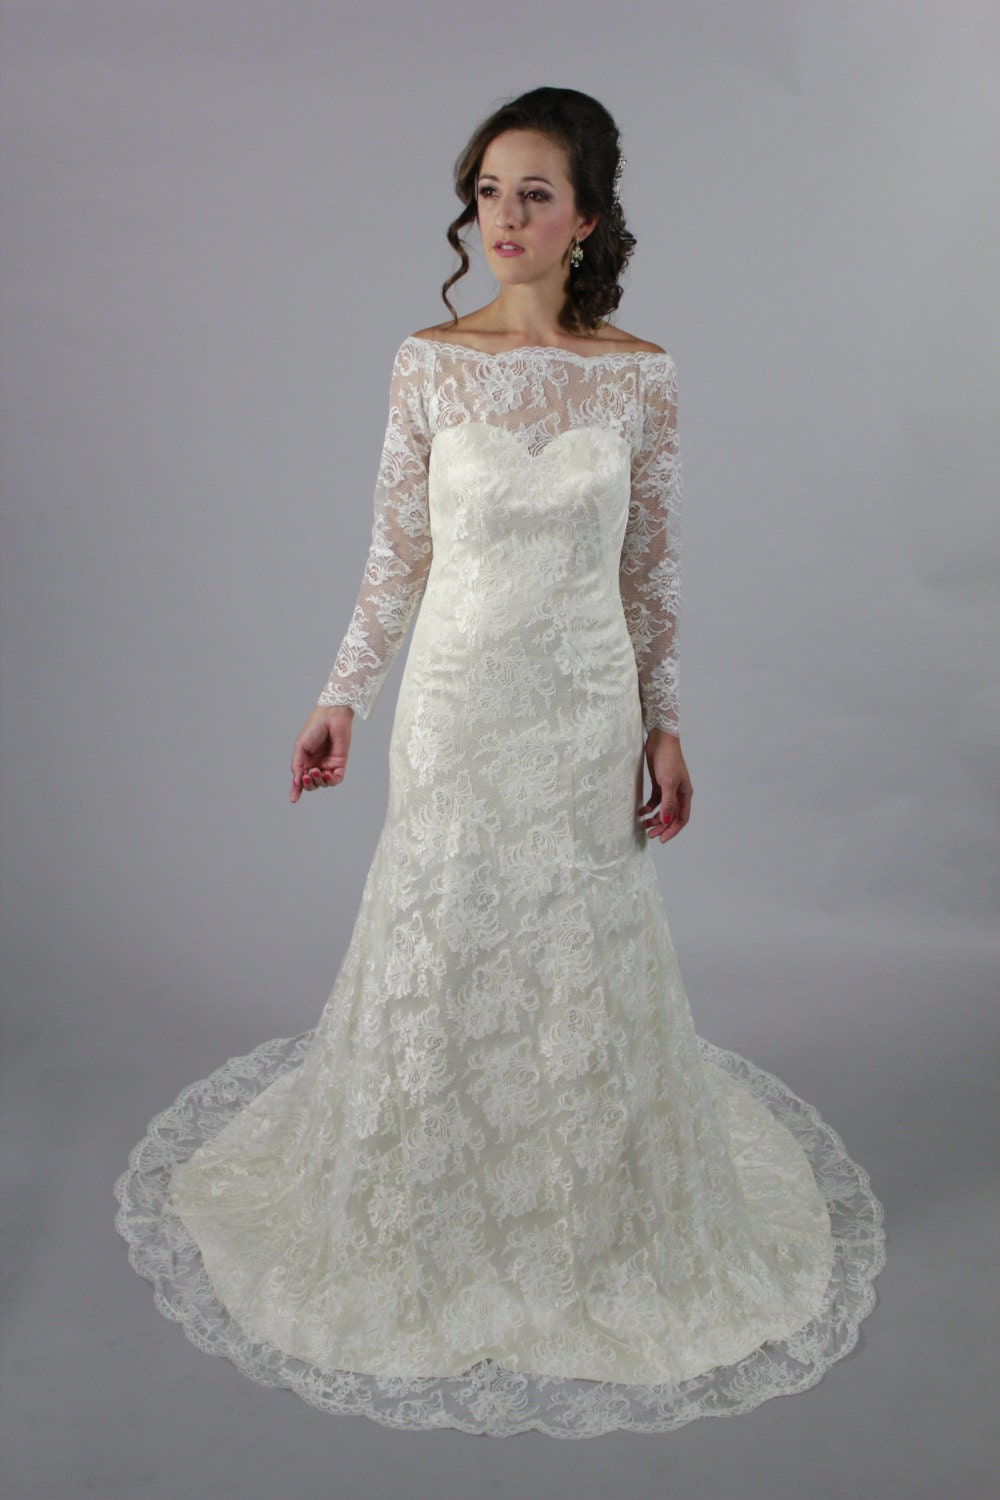 Wedding Gowns A Line Cut : Long sleeves a line lace wedding dress royal classic style